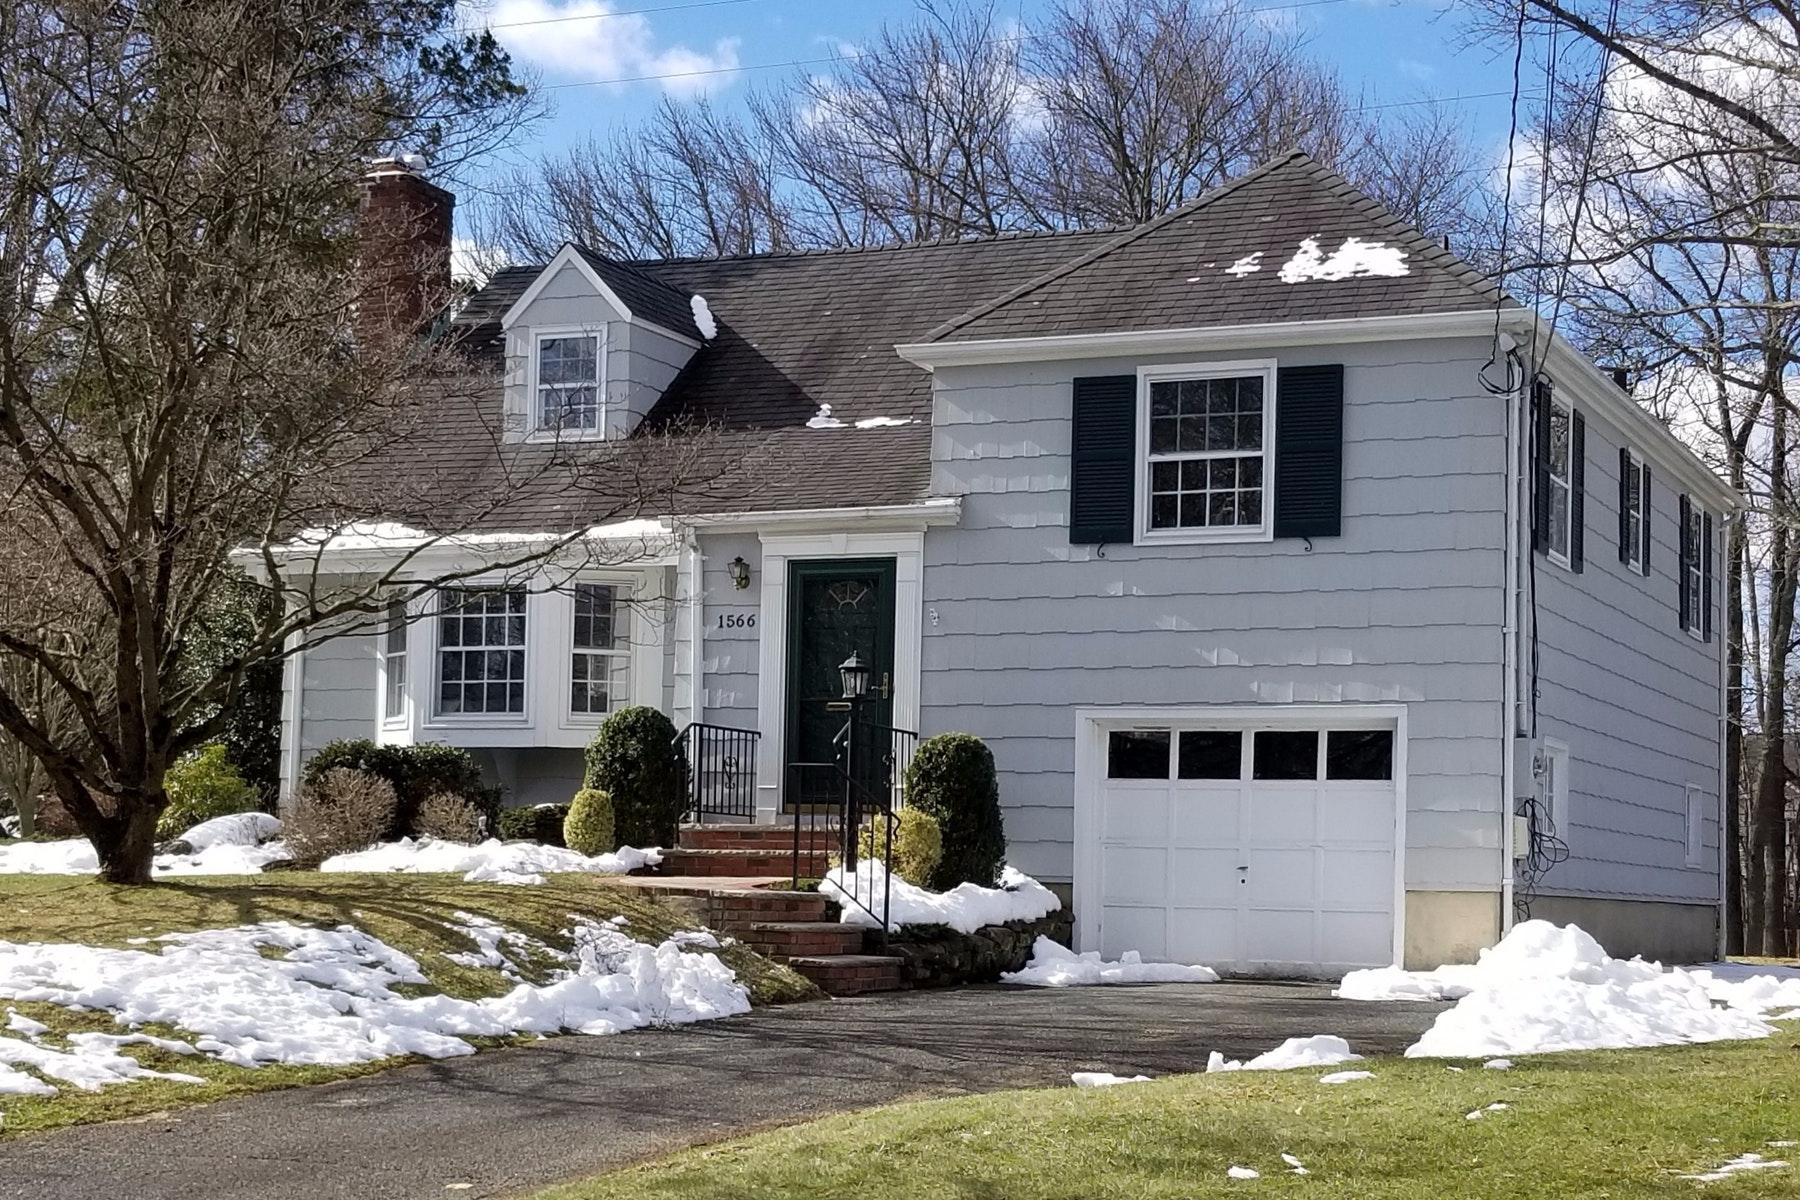 House for Sale at So Great to Come Home to! 1566 Ramapo Way Scotch Plains, New Jersey 07076 United States